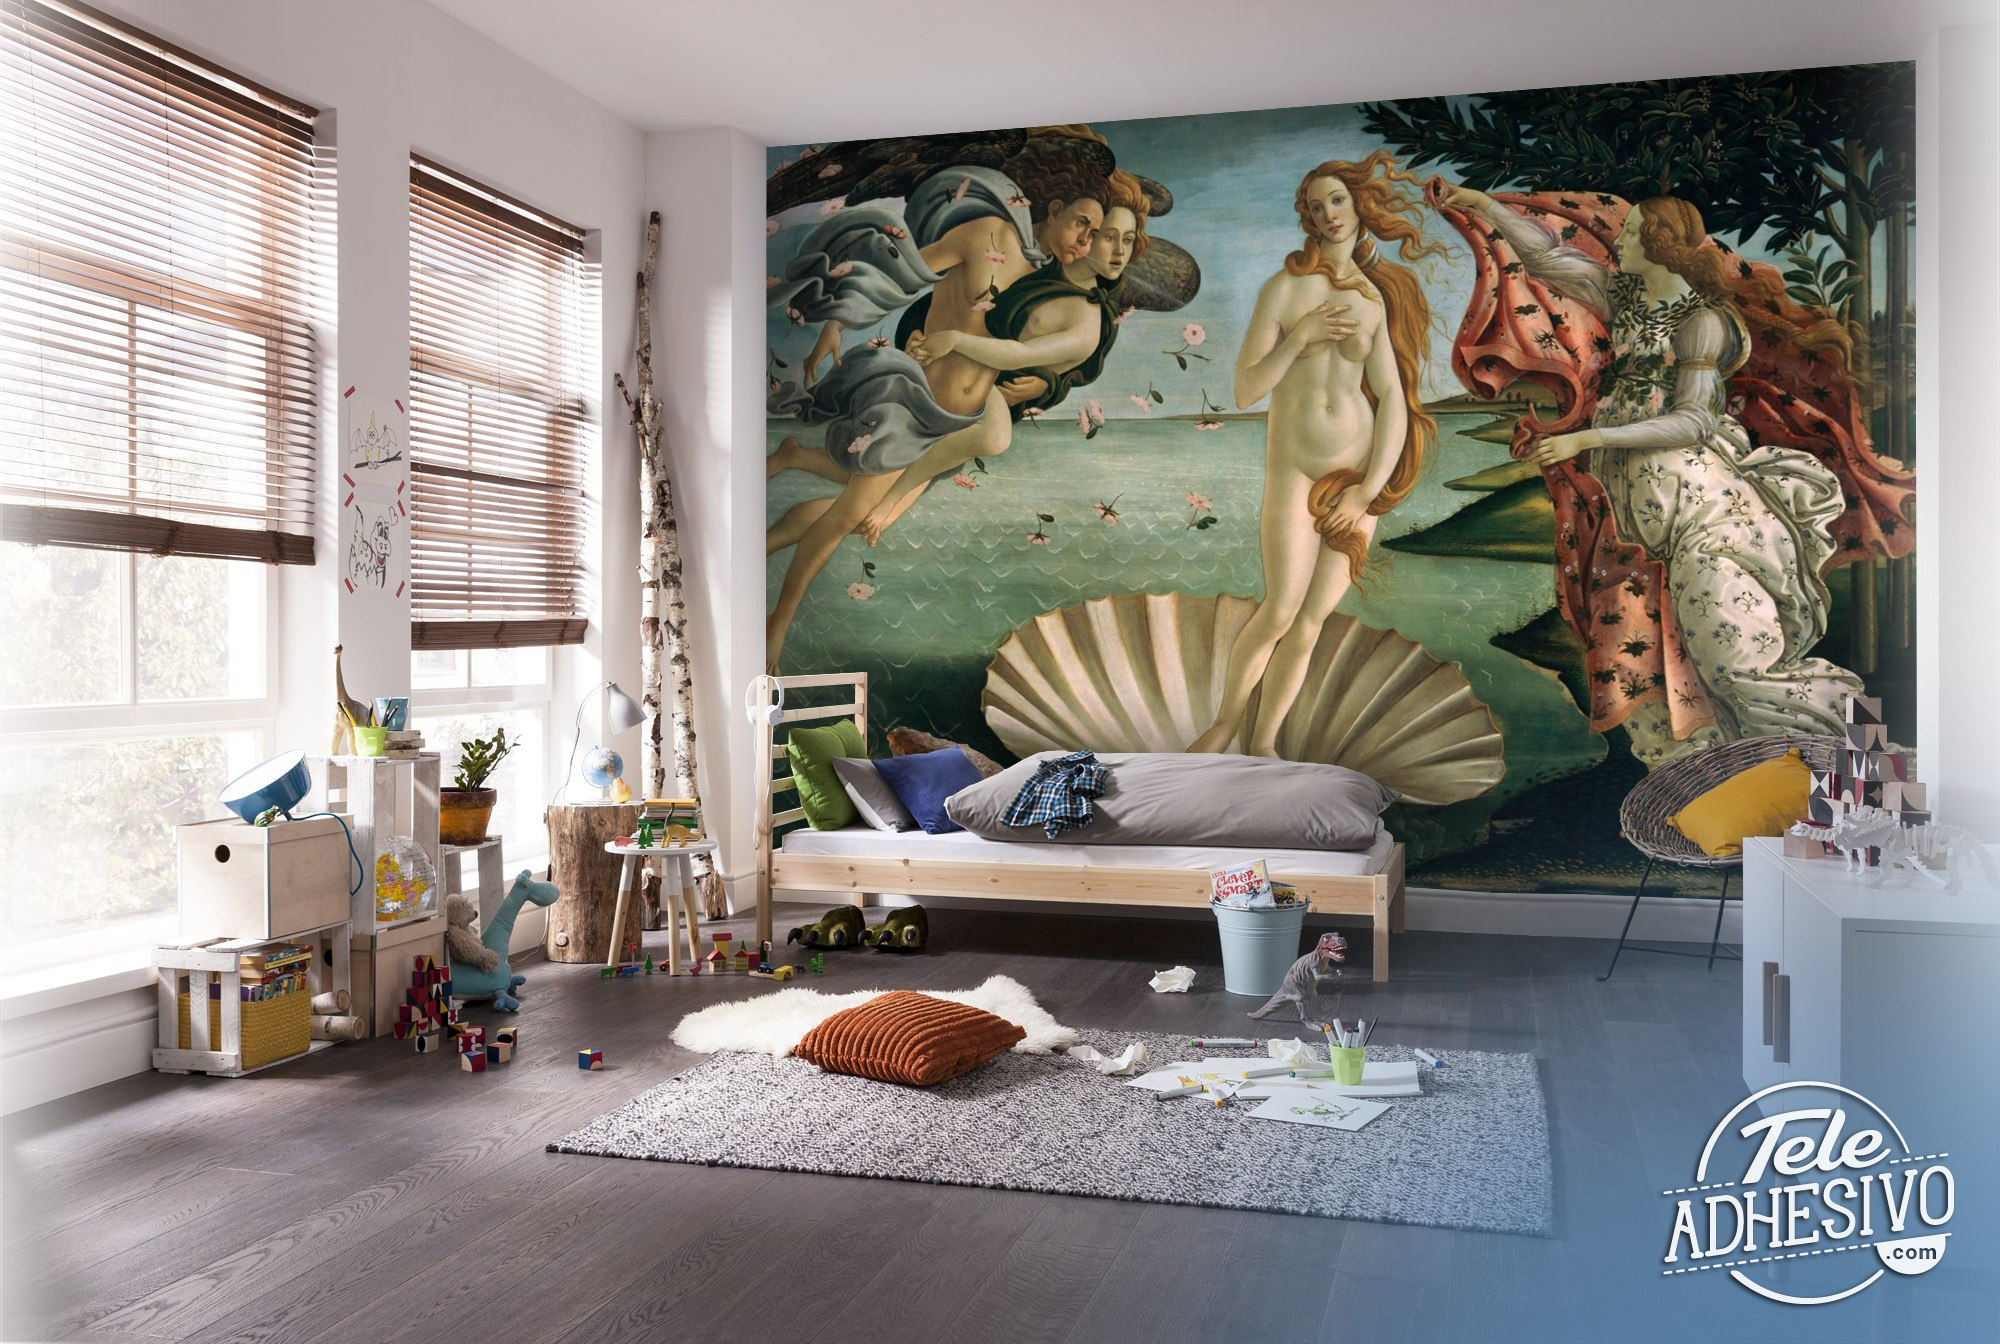 Wall Murals: Birth of Venus, Botticelli